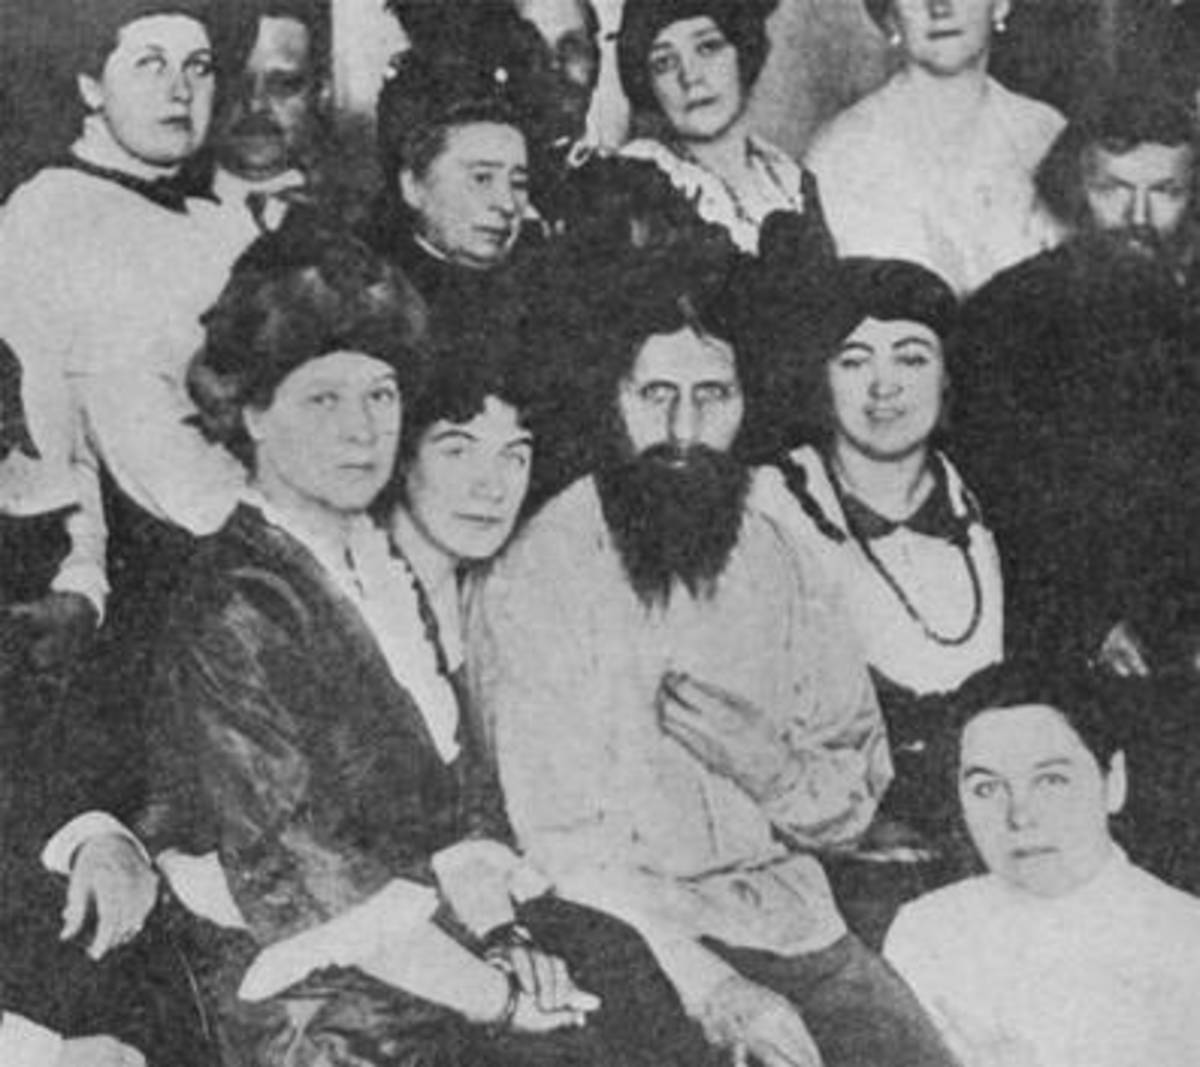 Grigorii Rasputin: The Russian royal family was tricked by a psychopath masquerading as a healer; many people believe he was solely responsible for the downfall of the Romanov Dynasty.